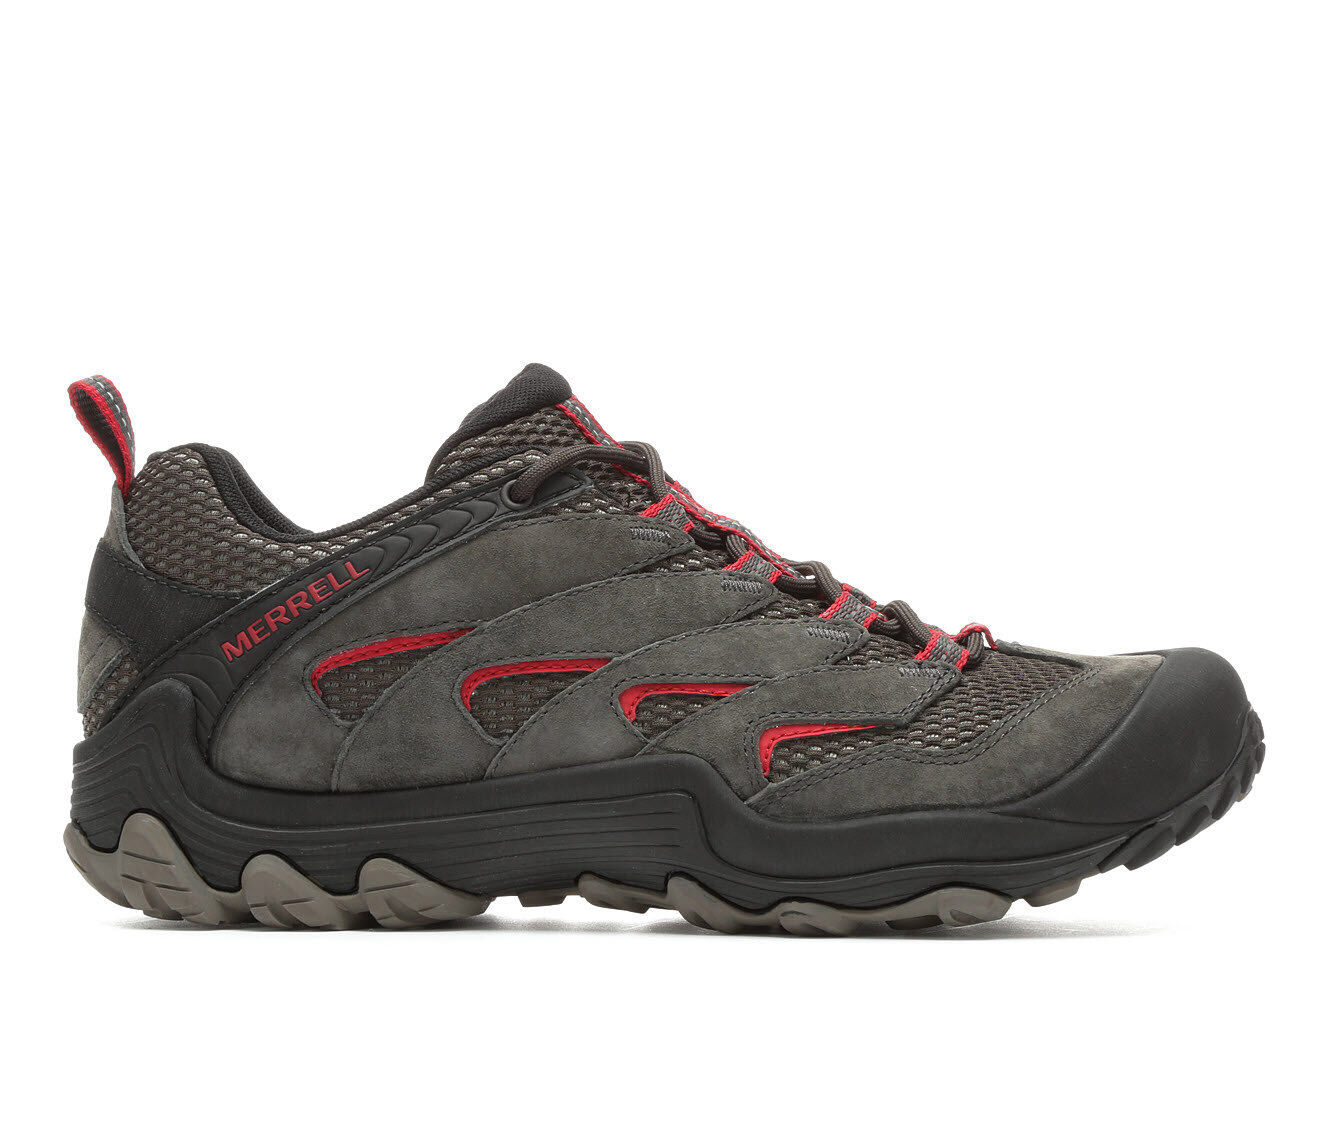 cheapest Men's Merrell Chameleon 7 Limit Low Hiking Shoes pay with visa cheap online cheap price pre order iuuHYhJW